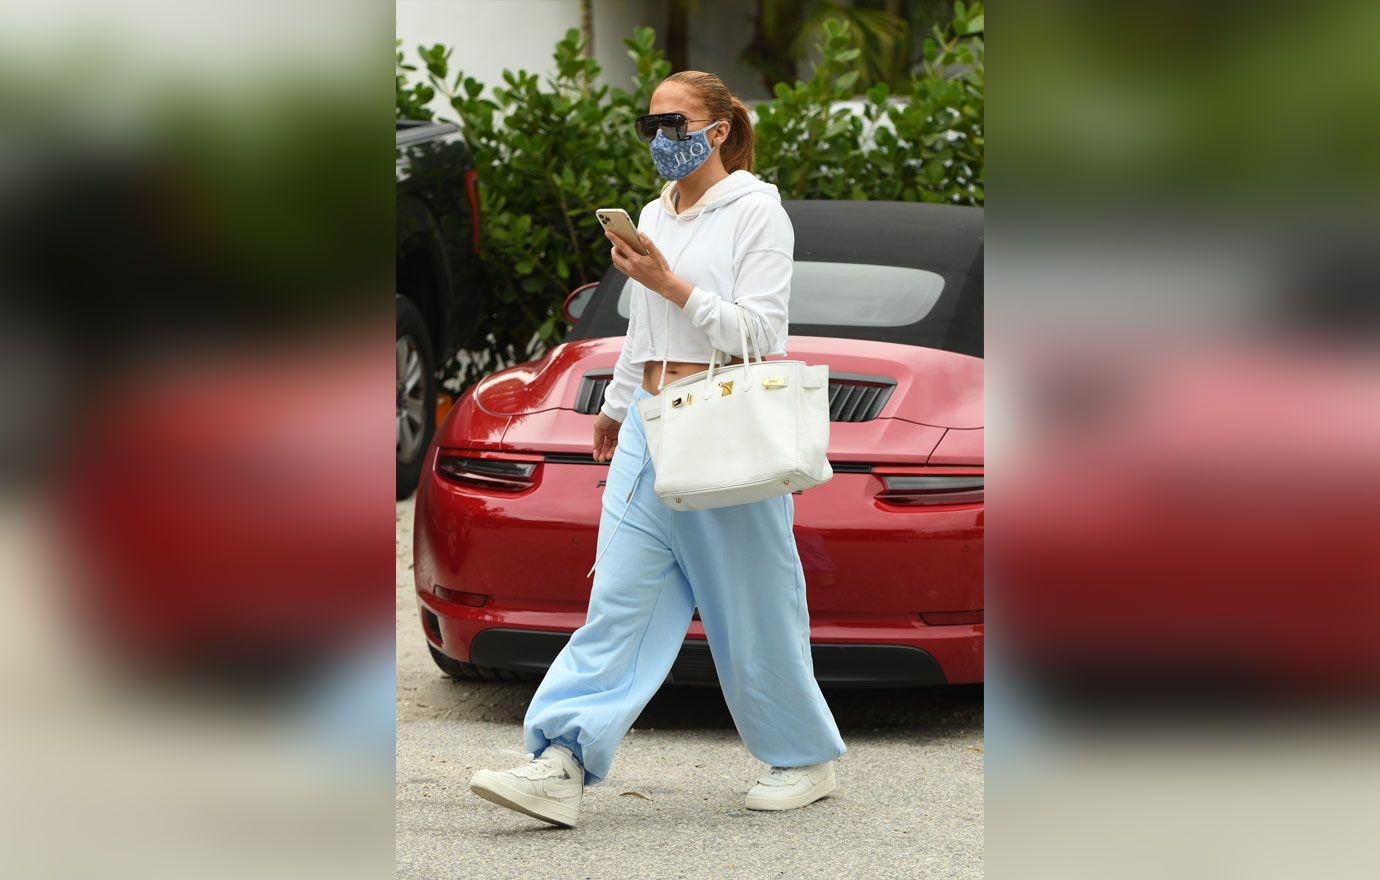 jennifer-lopez-leaves-gym-lunch-with-friends-03-1610554176111.jpg